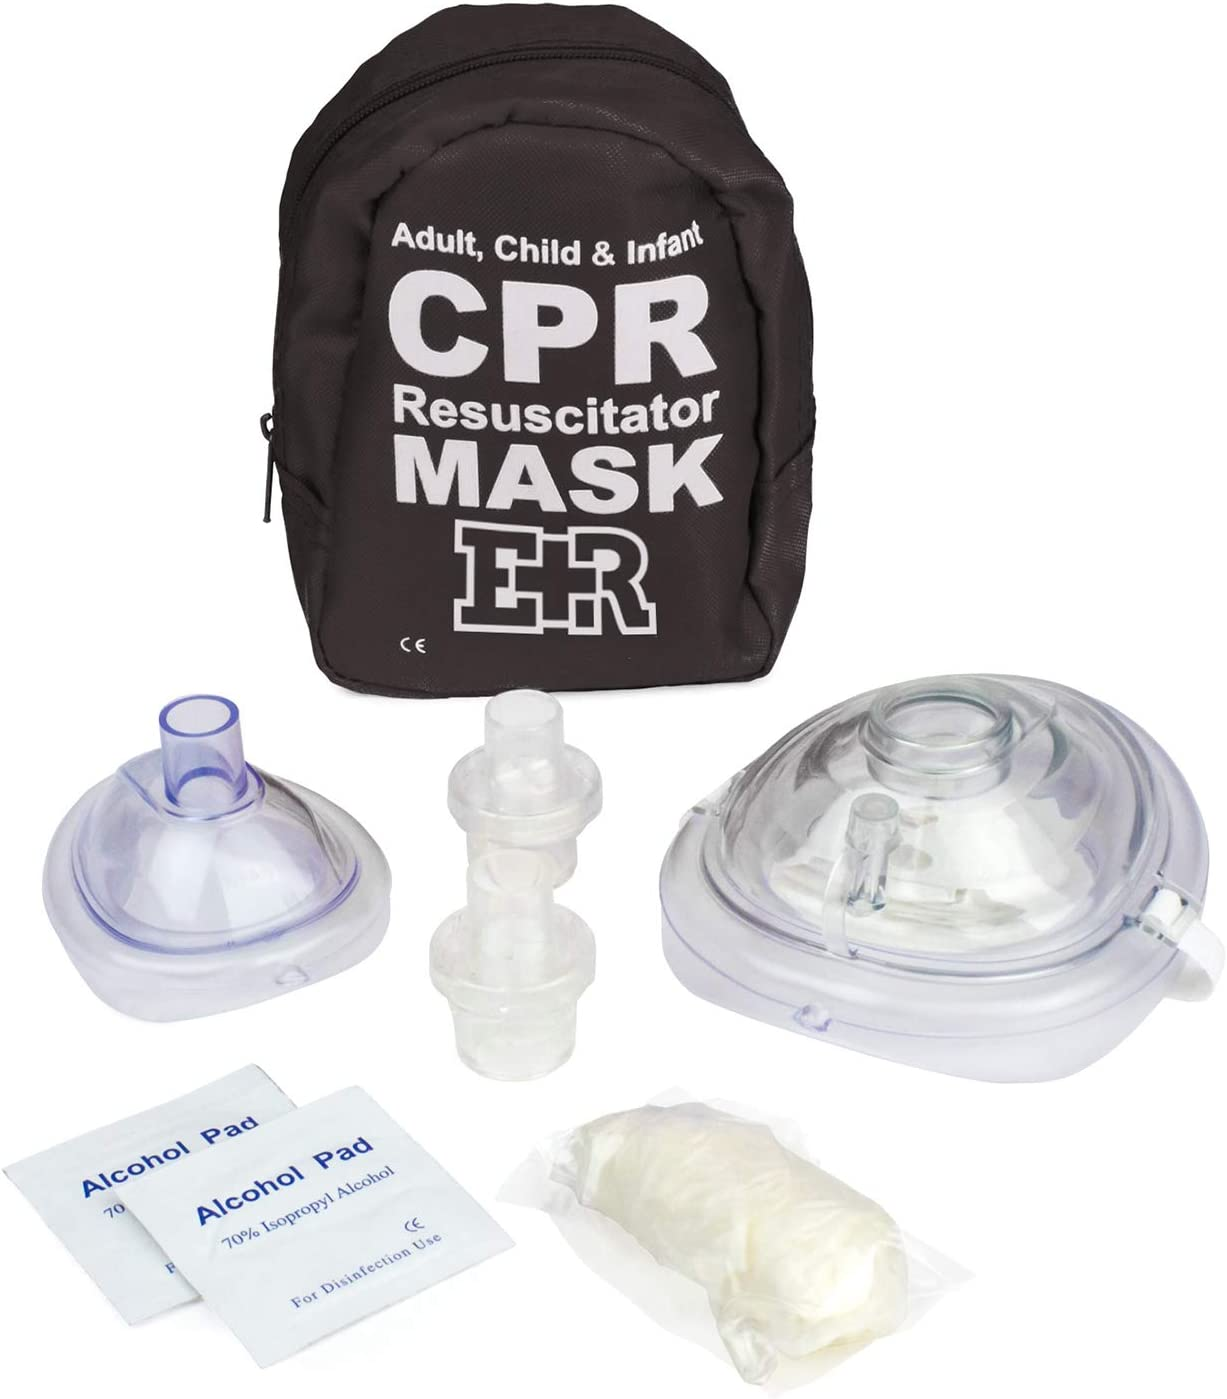 Ever Ready First Aid Adult and Infant CPR Mask Combo Kit with 2 Valves with Pair of Nitrile Gloves & 2 Alcohol Prep Pads - Tactical Black - 2 Pack: Health & Personal Care